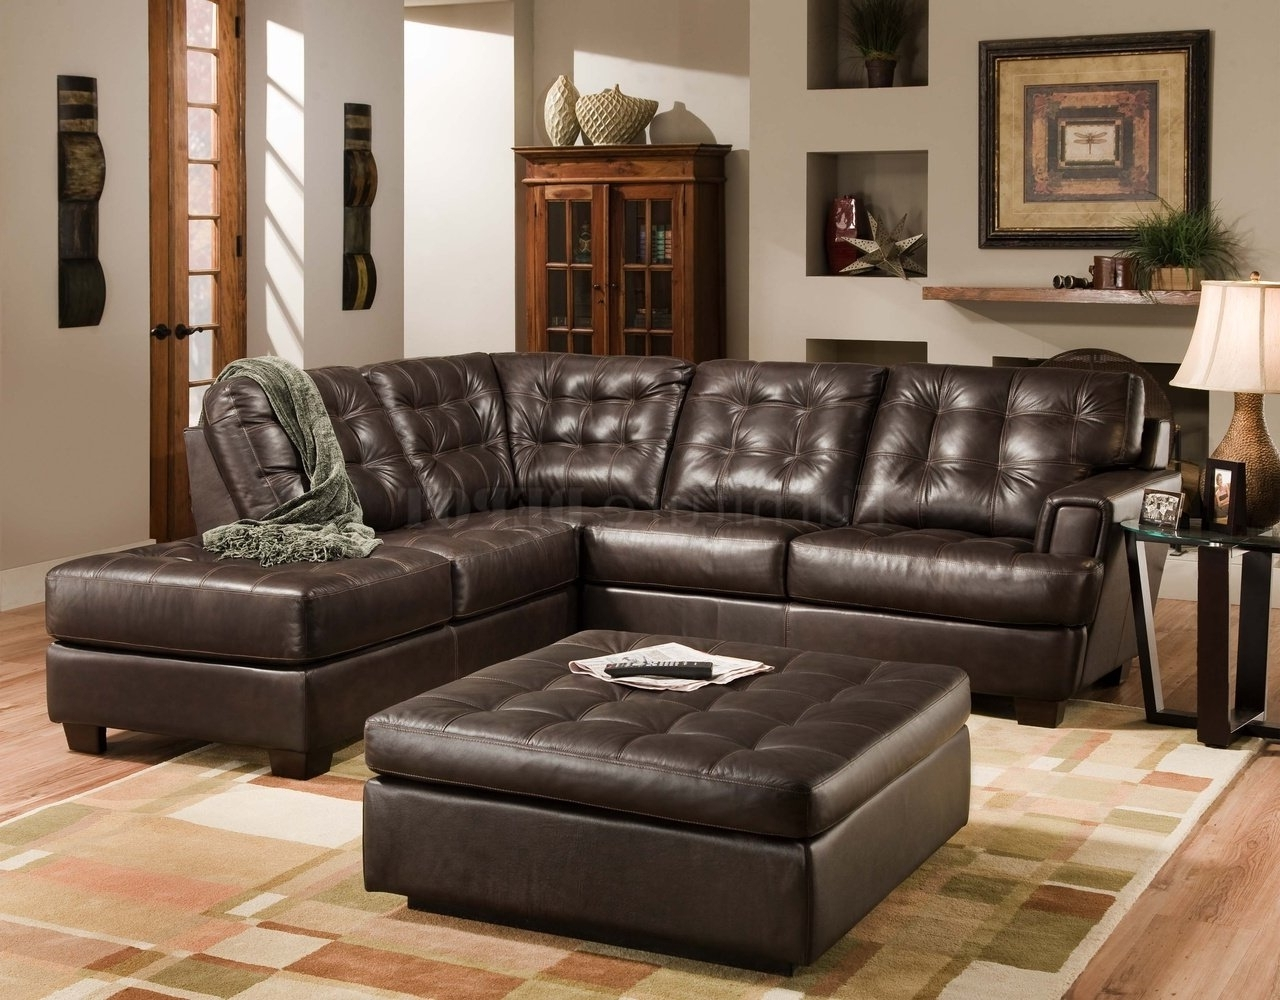 2017 Double Chaise Loveseat Leather Loveseat With Chaise Large Within Brown Sectionals With Chaise (View 1 of 15)